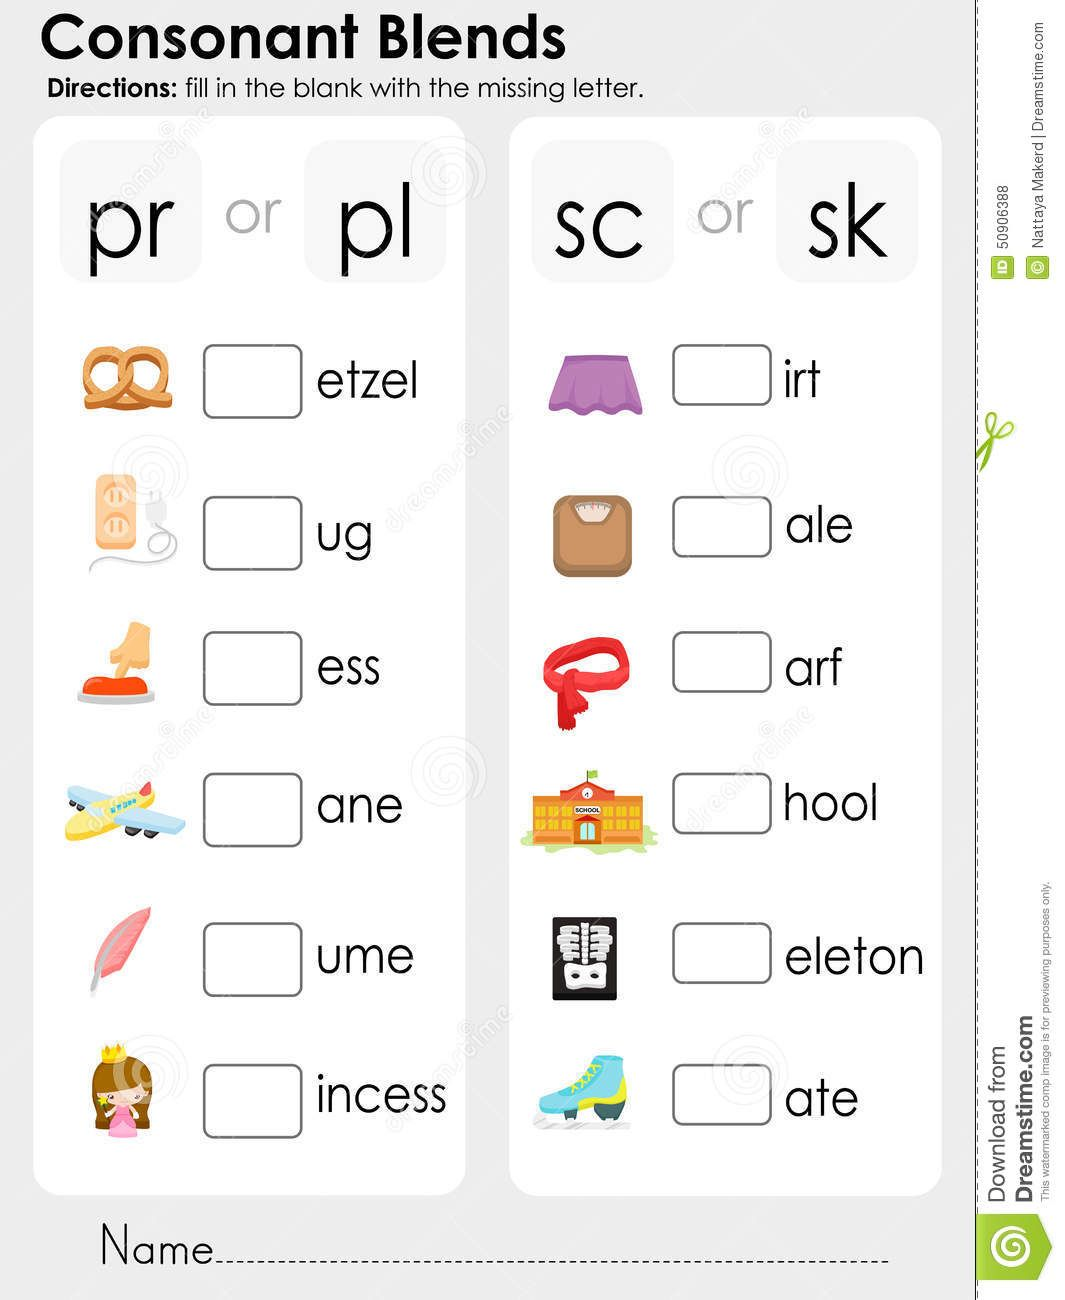 consonant-blends-missing-letter-worksheet-education-fill-blank-50906388.jpg  (1065×1300)   Blends worksheets [ 1300 x 1065 Pixel ]